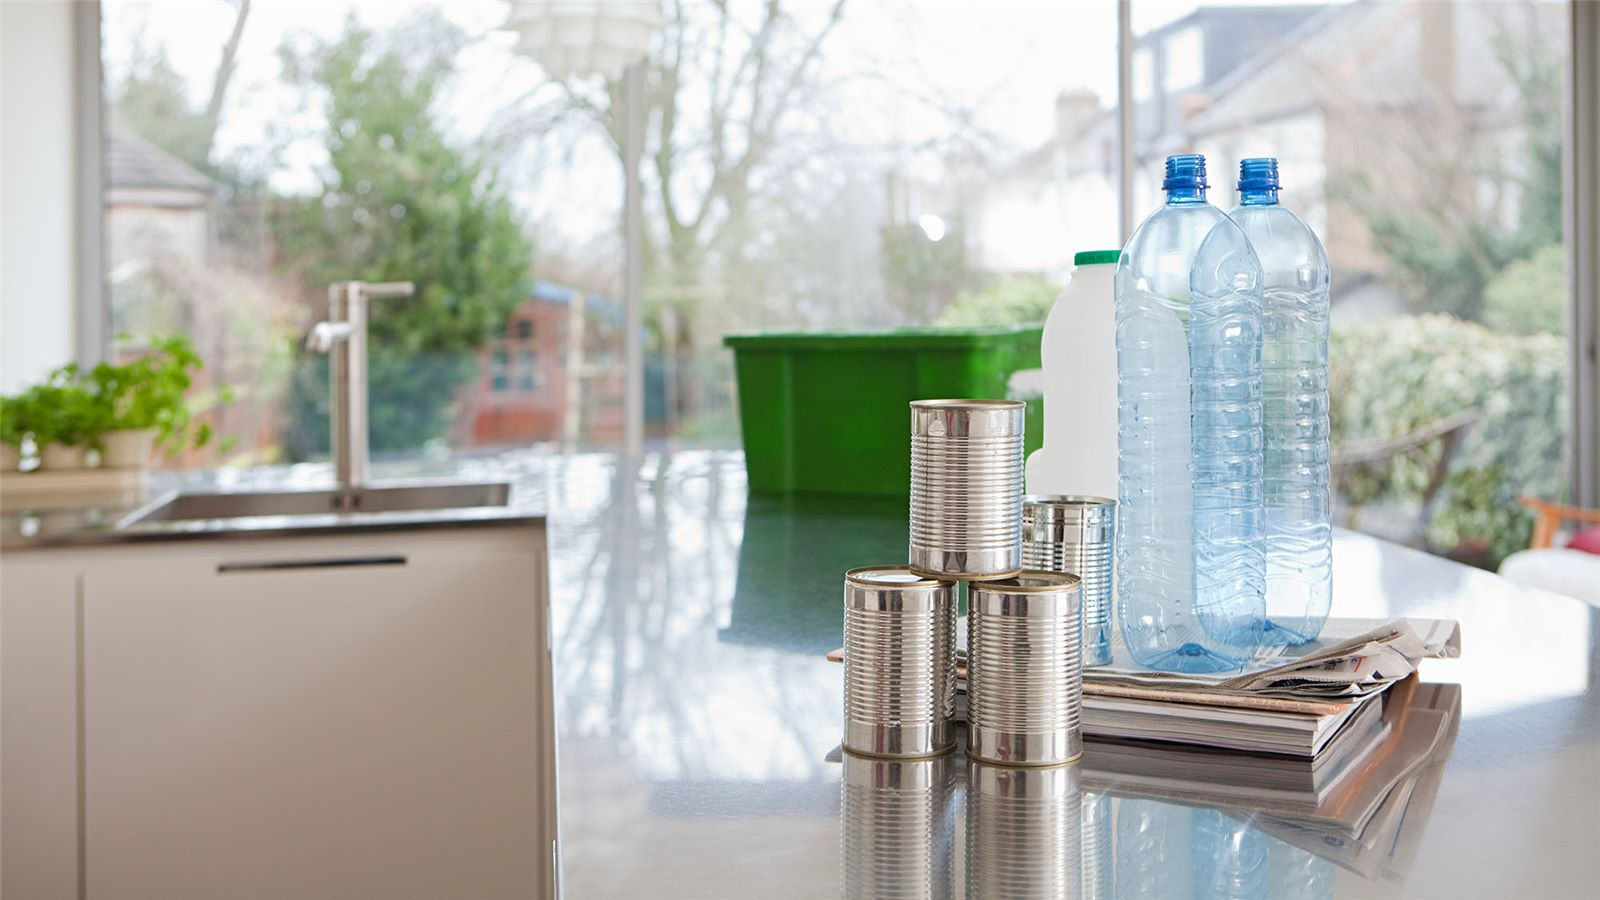 Household recycling items